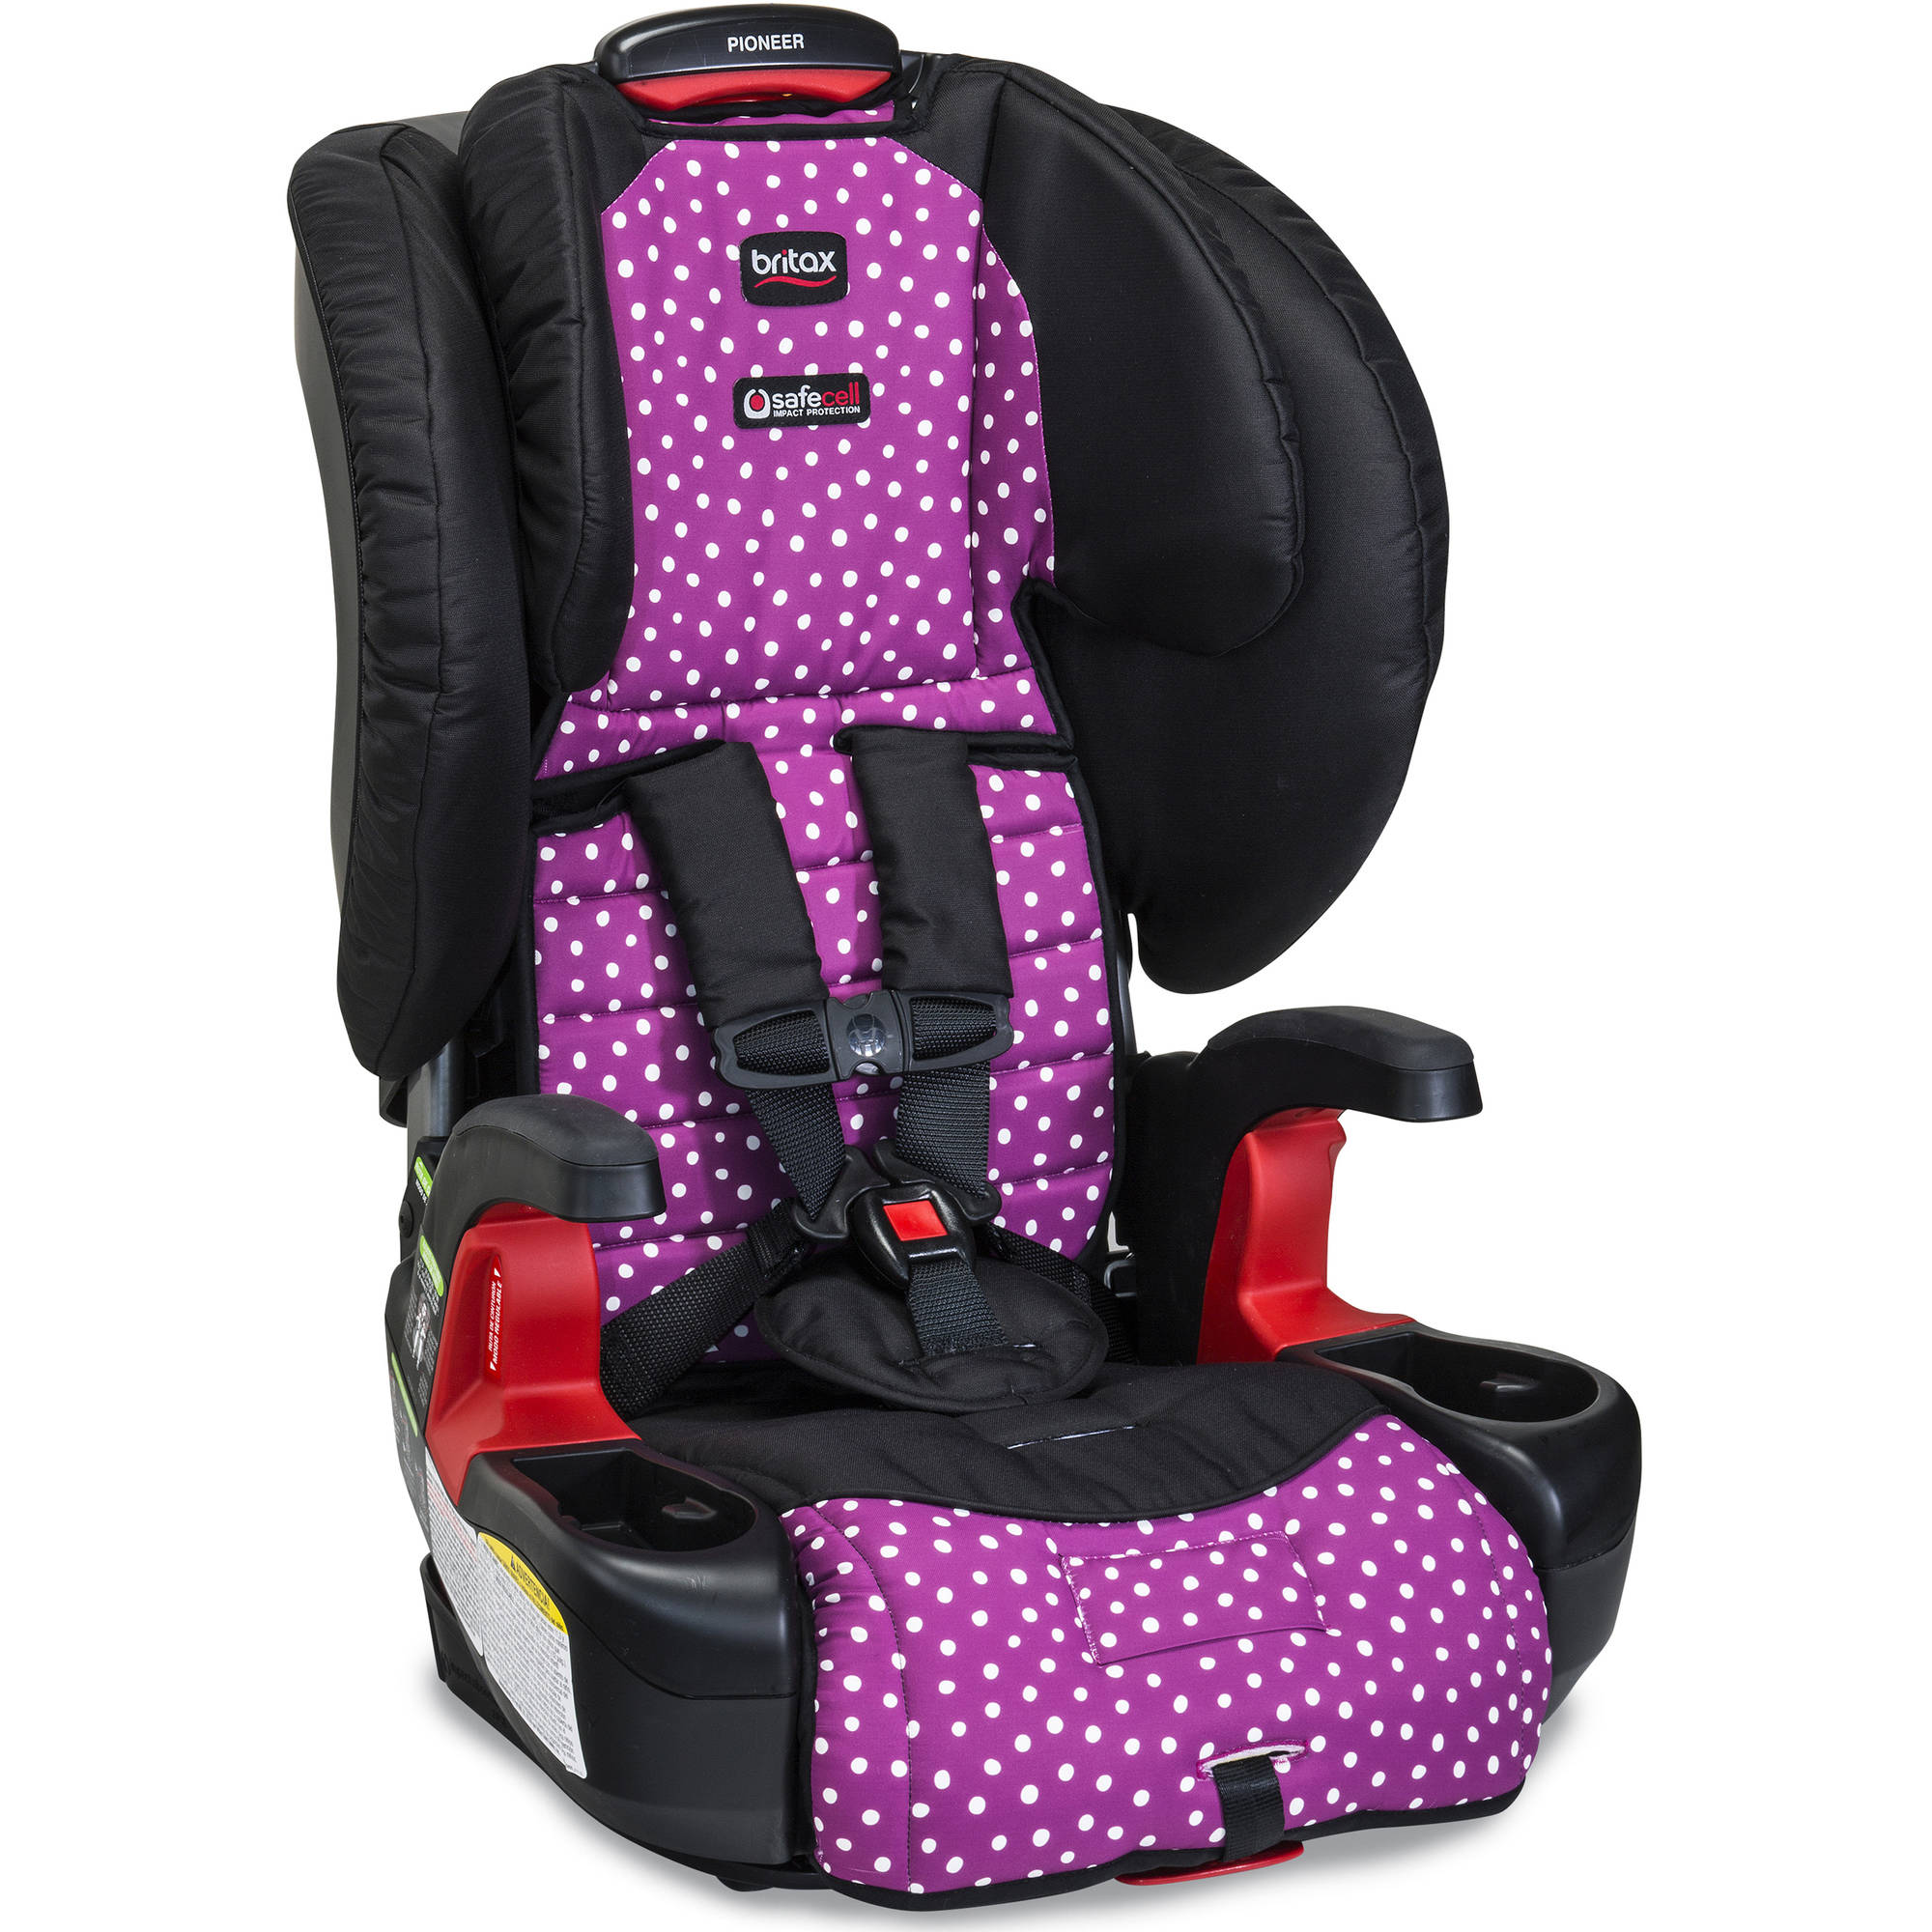 Pioneer G1.1 Harness-2-Booster Car Seat, Confetti